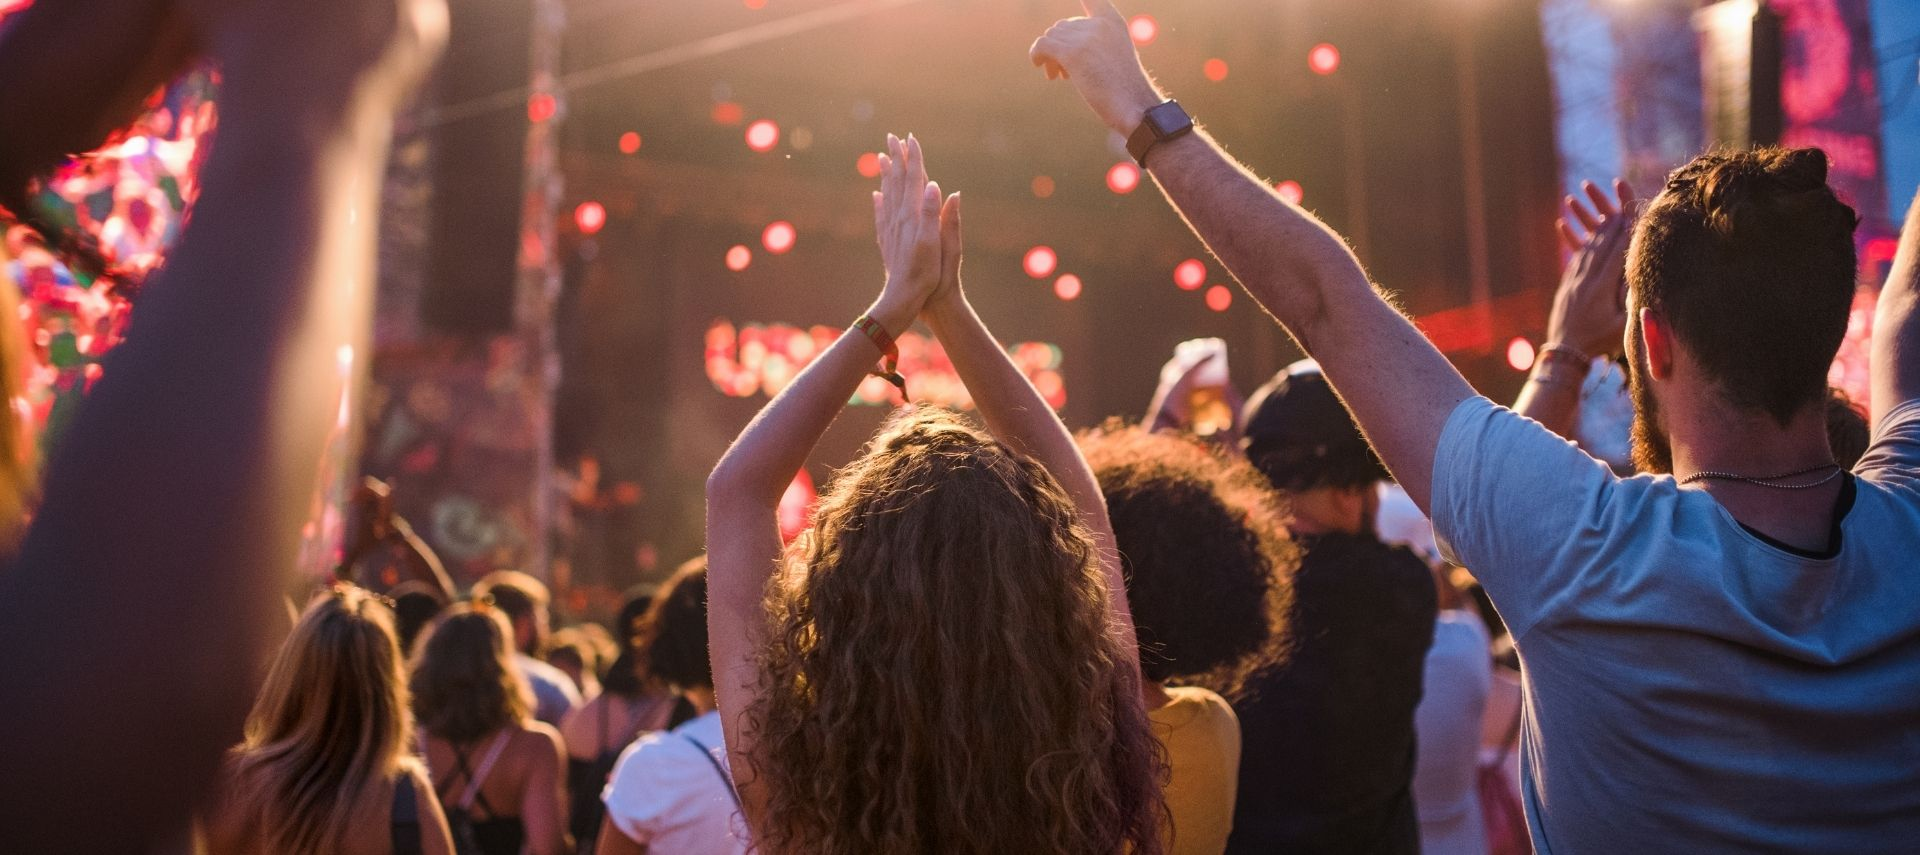 Outdoor concert with people raising their arms to the music